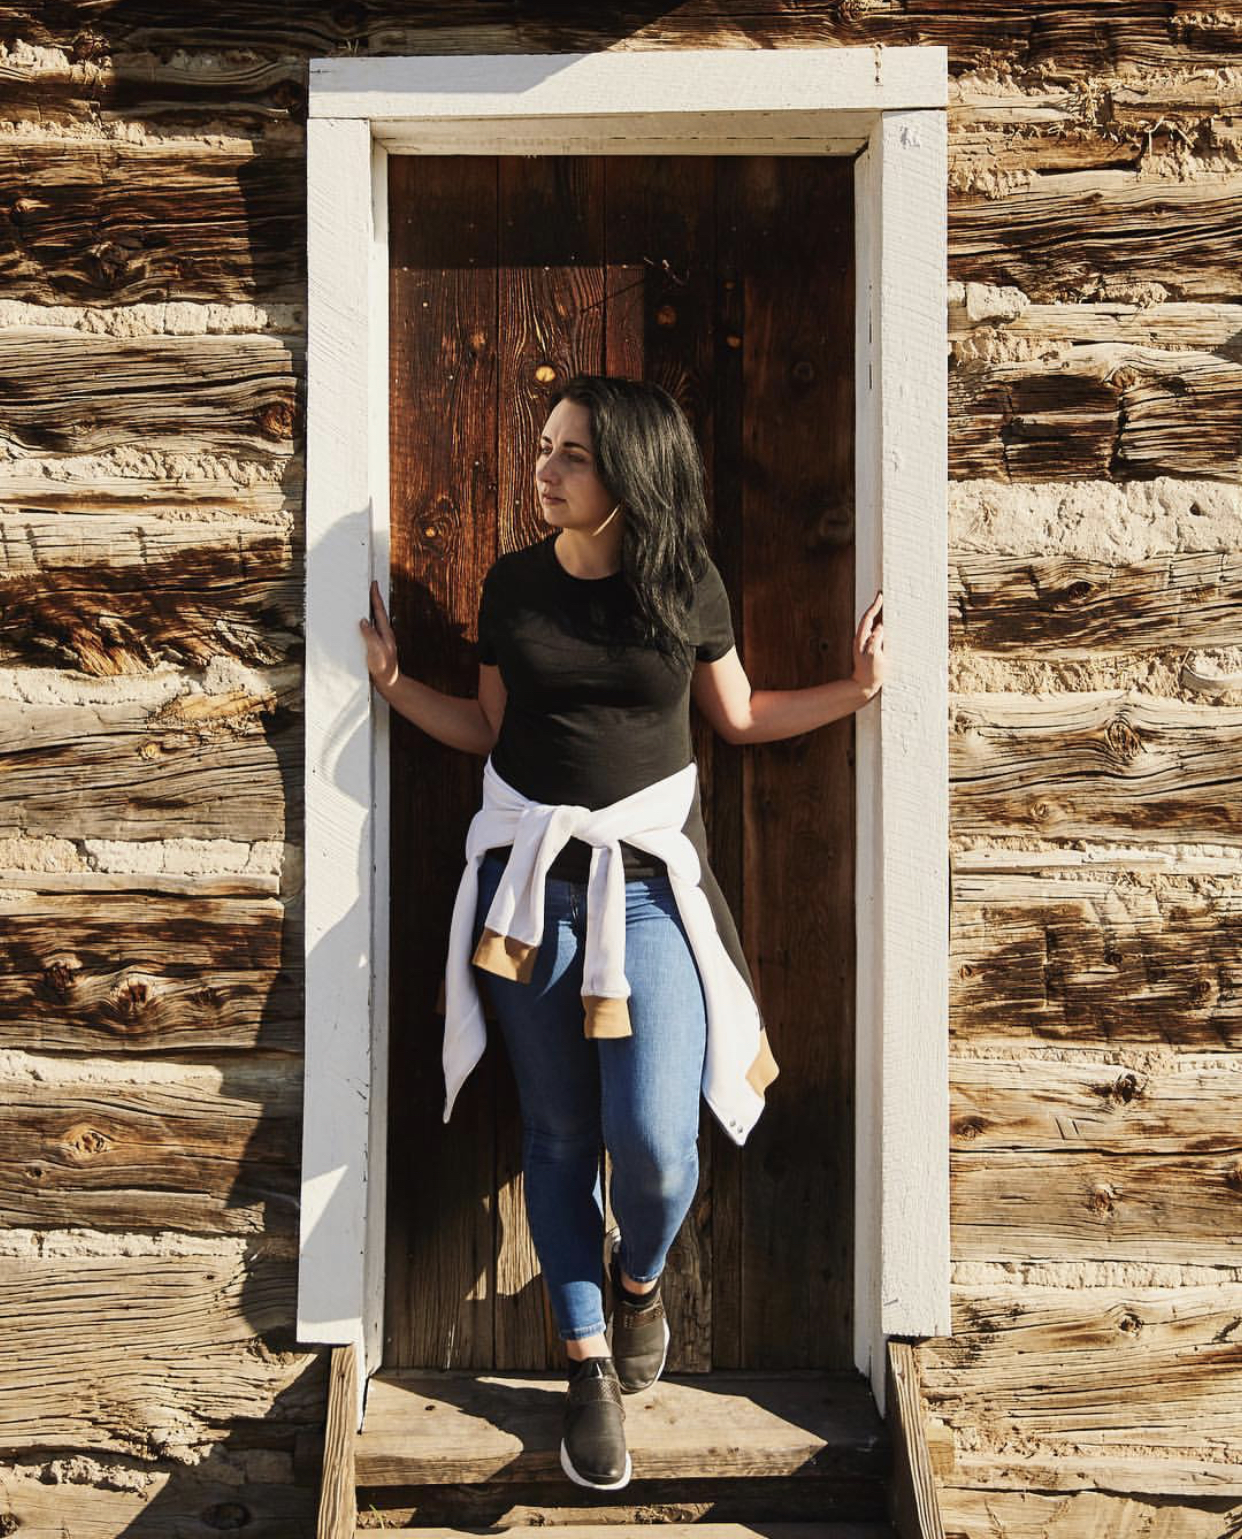 About - Marissa Merchant is a wardrobe and production stylist based in Denver, CO.